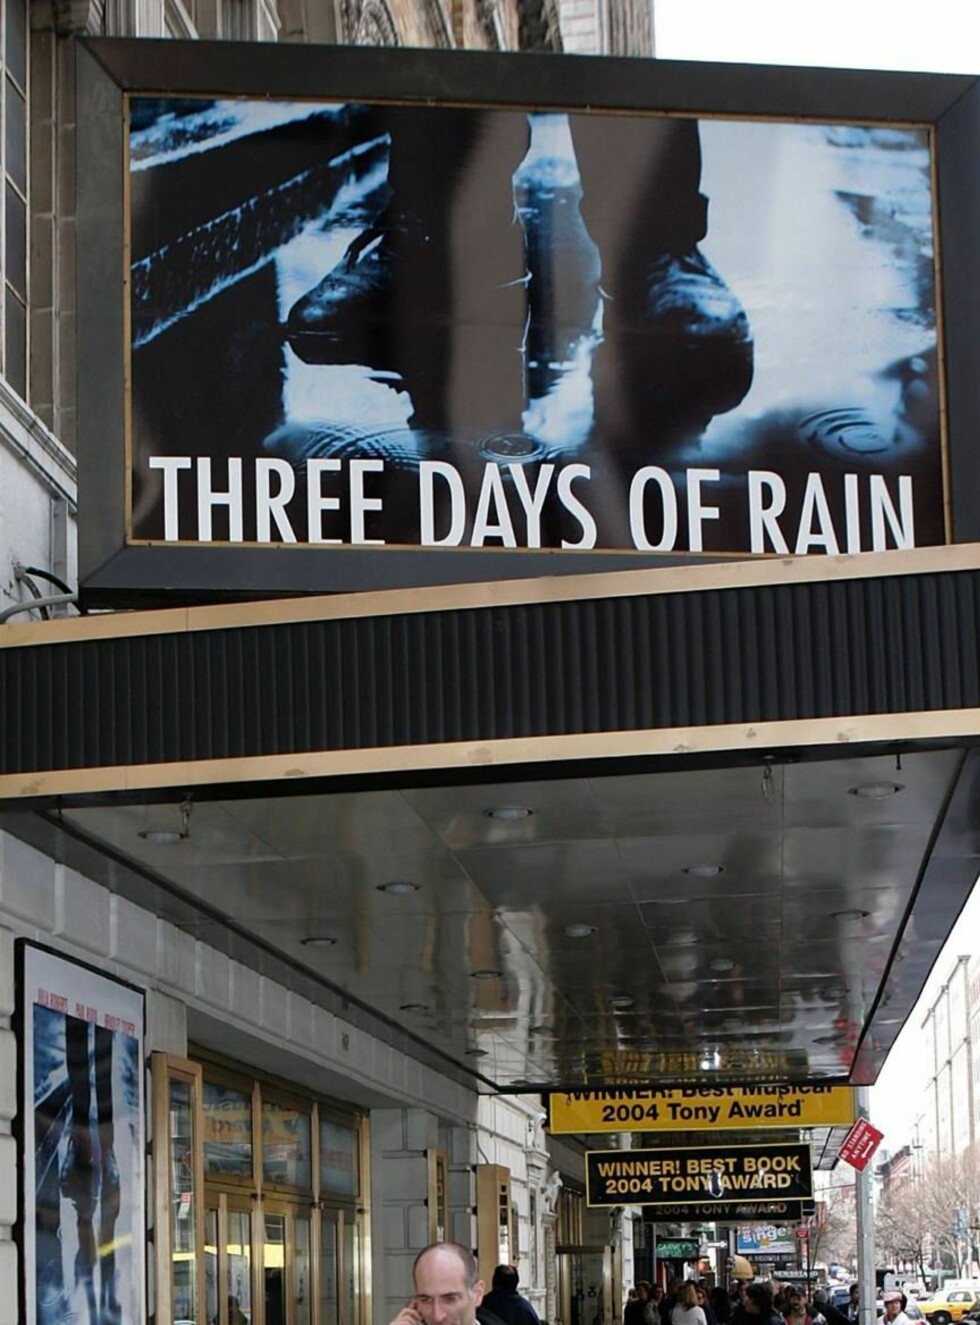 """NEW YORK - MARCH 24:  Signage for the """"Three Days of Rain"""" is seen at Bernard B. Jacobs Theater on March 24, 2006 in New York City. Three Days of Rain starring Julia Roberts opens April 19, 2006.  (Photo by Paul Hawthorne/Getty Images)  * SPECIAL INSTRUCT Foto: All Over Press"""